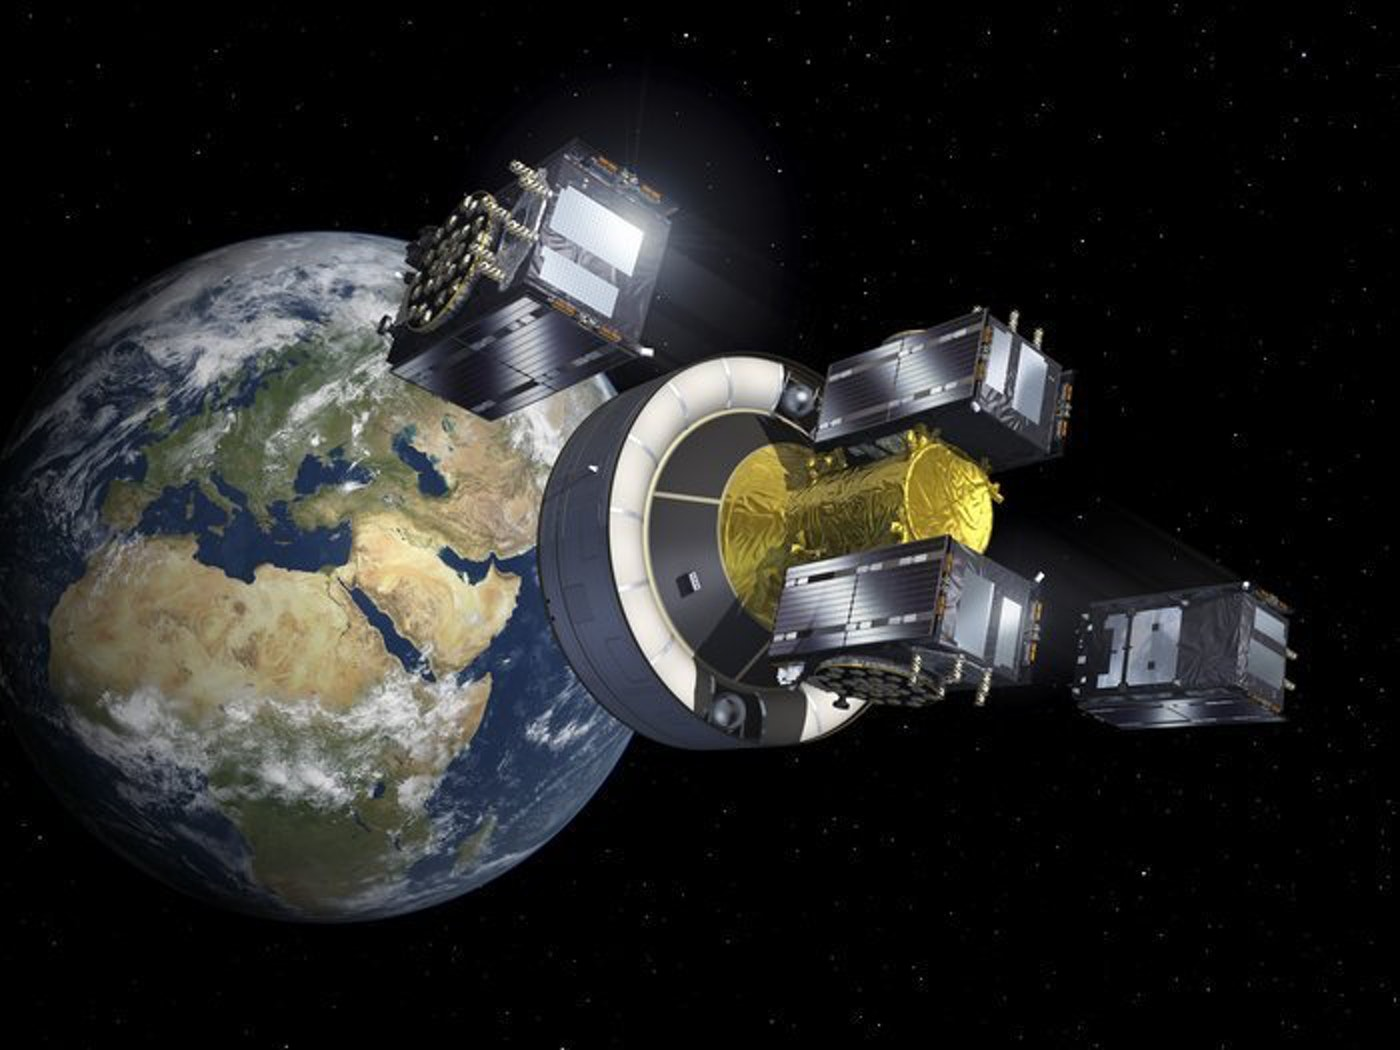 The four Galileo satellites successfully separated and are healthy.